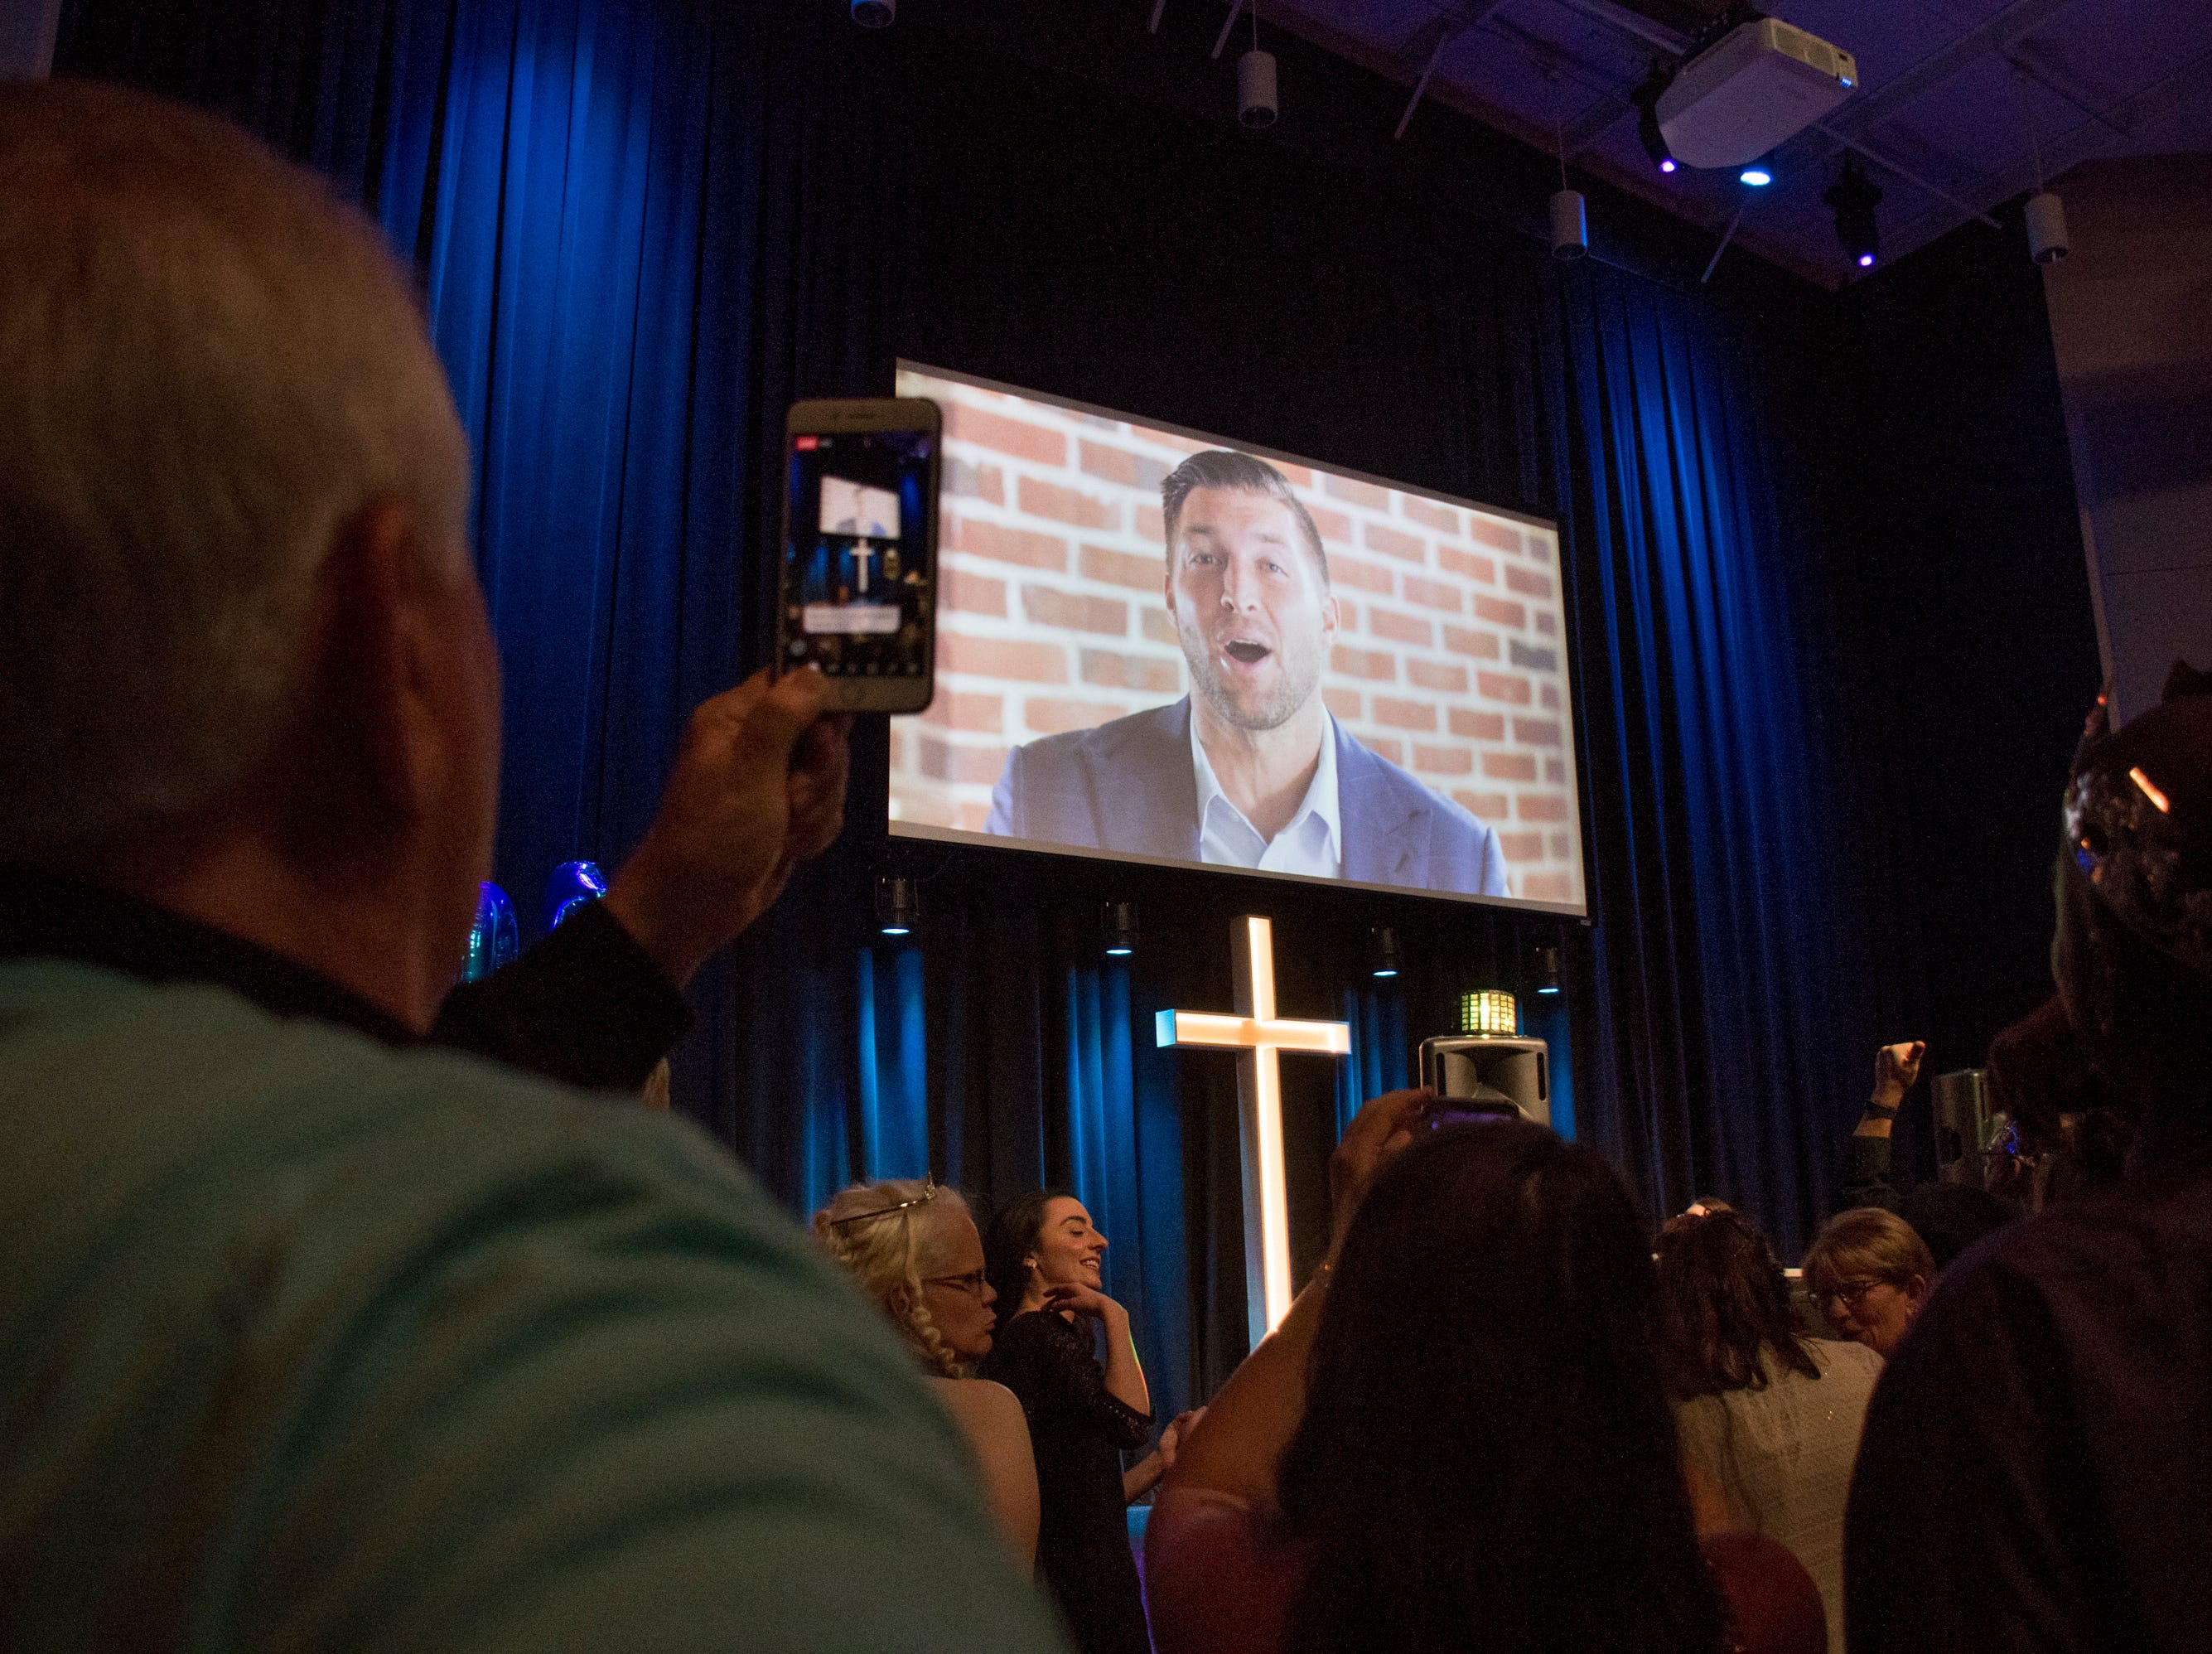 Tim Tebow talks to guests during a video presentation at the Night to Shine prom for people with special needs sponsored by the Tim Tebow Foundation at Perdido Bay United Methodist Church in Pensacola on Friday, February 8, 2019.